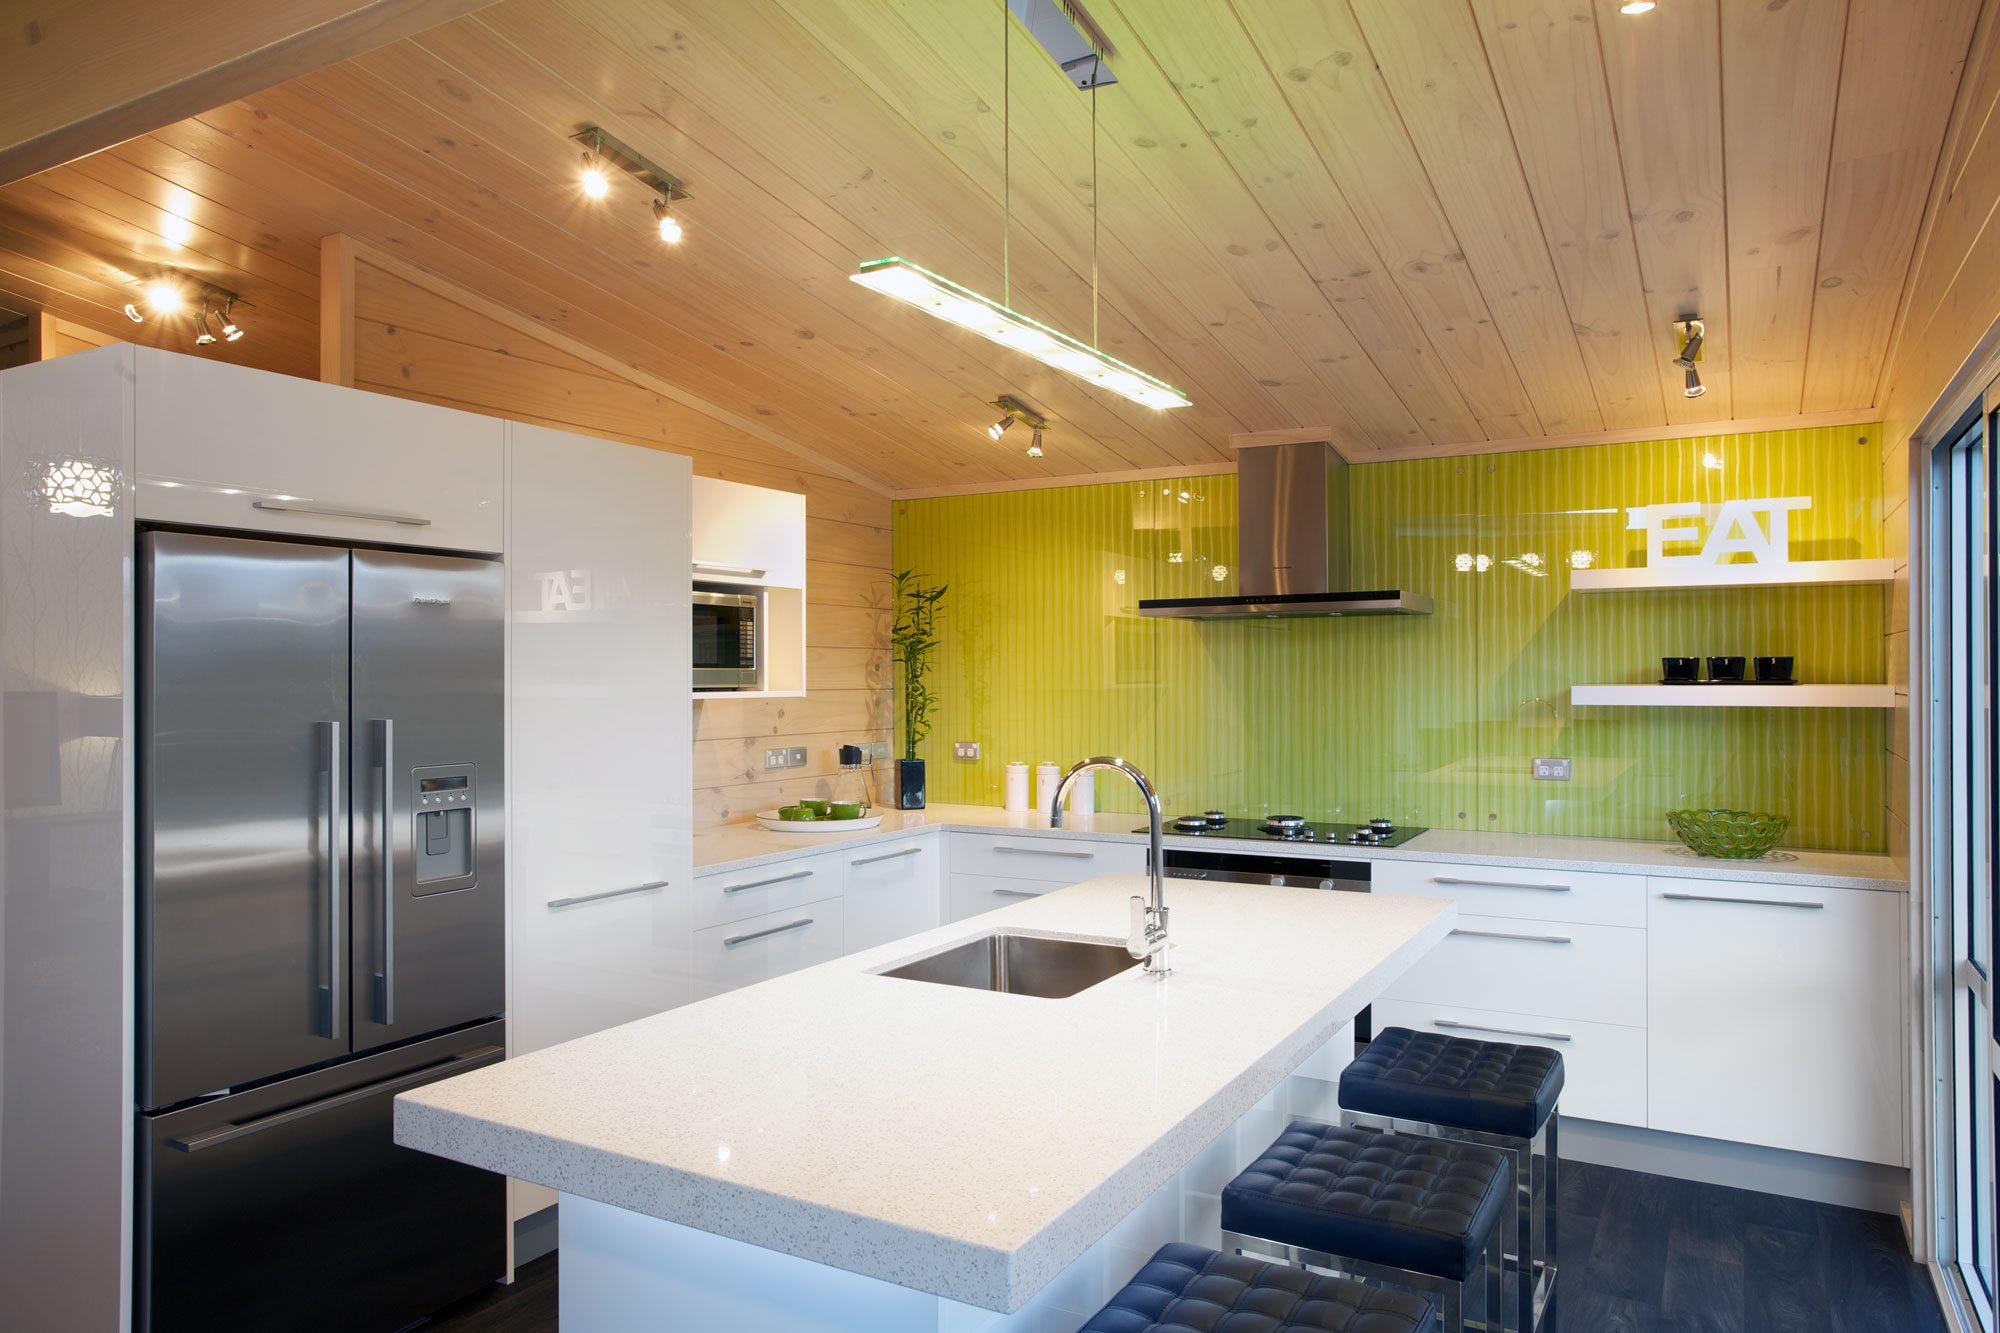 Kitchen with green splashback